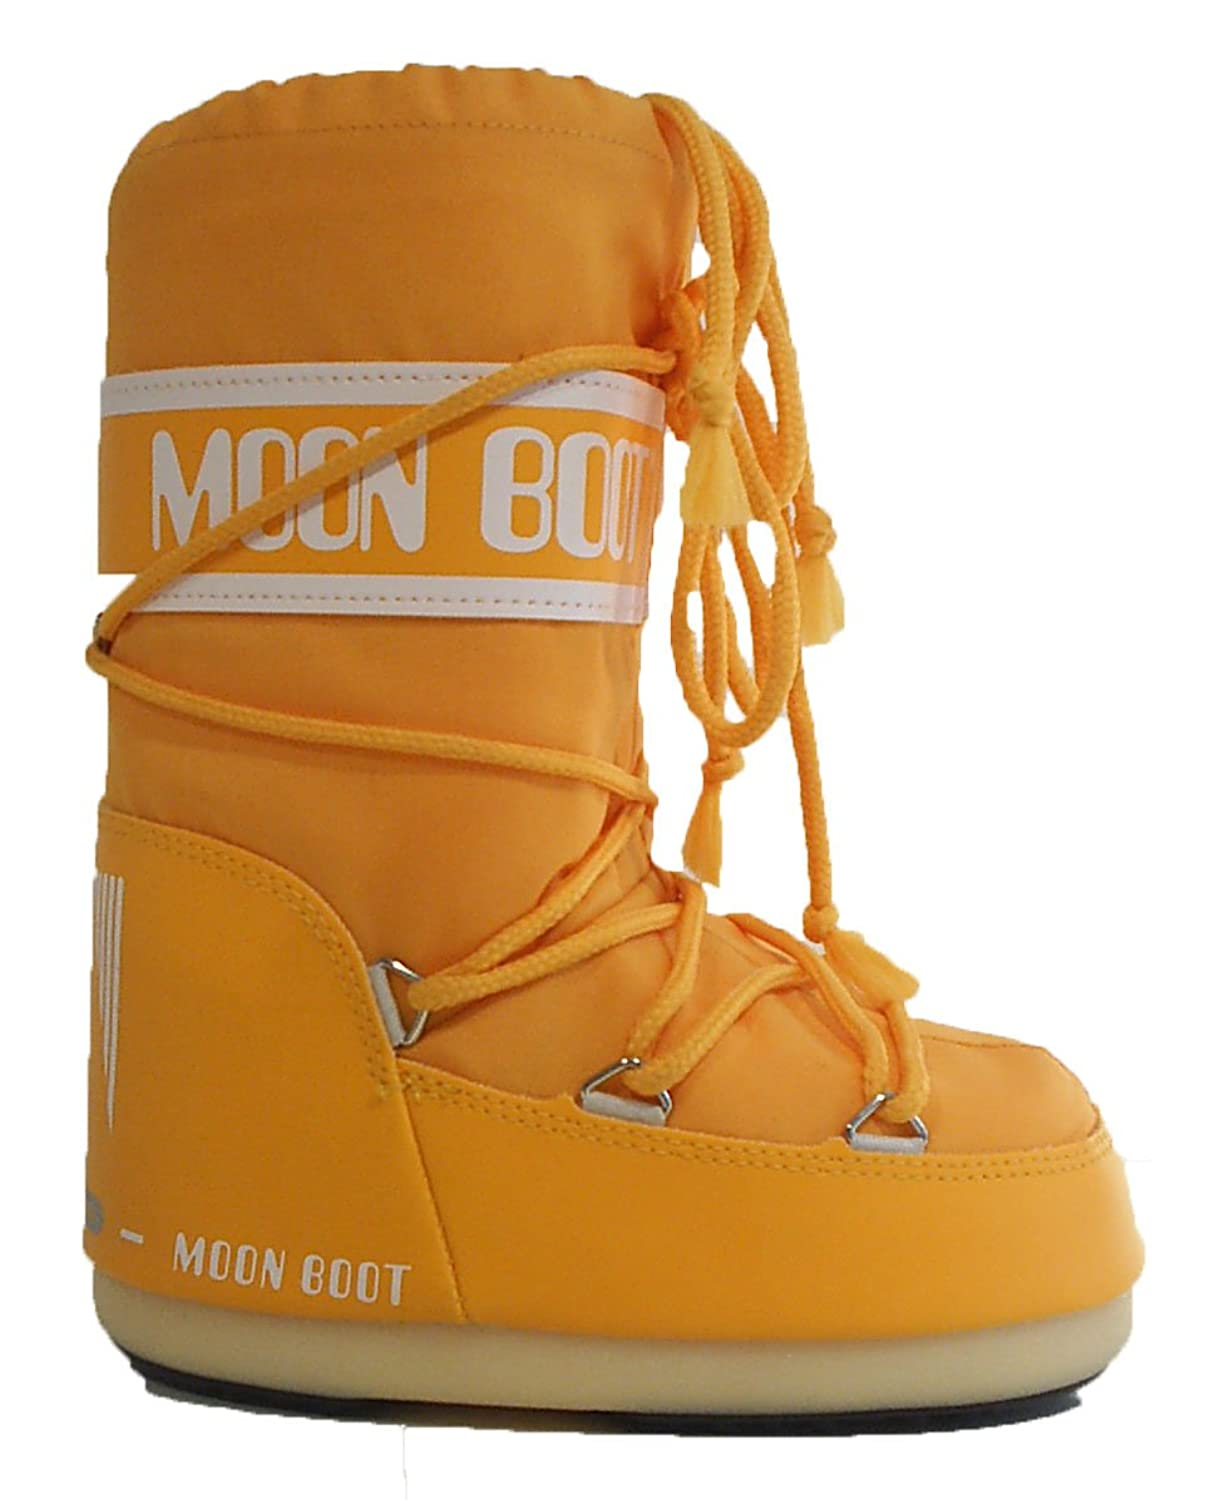 Kinder Moonboots Moon Boot Boots Tecnica Schnee Stiefel orange online bestellen